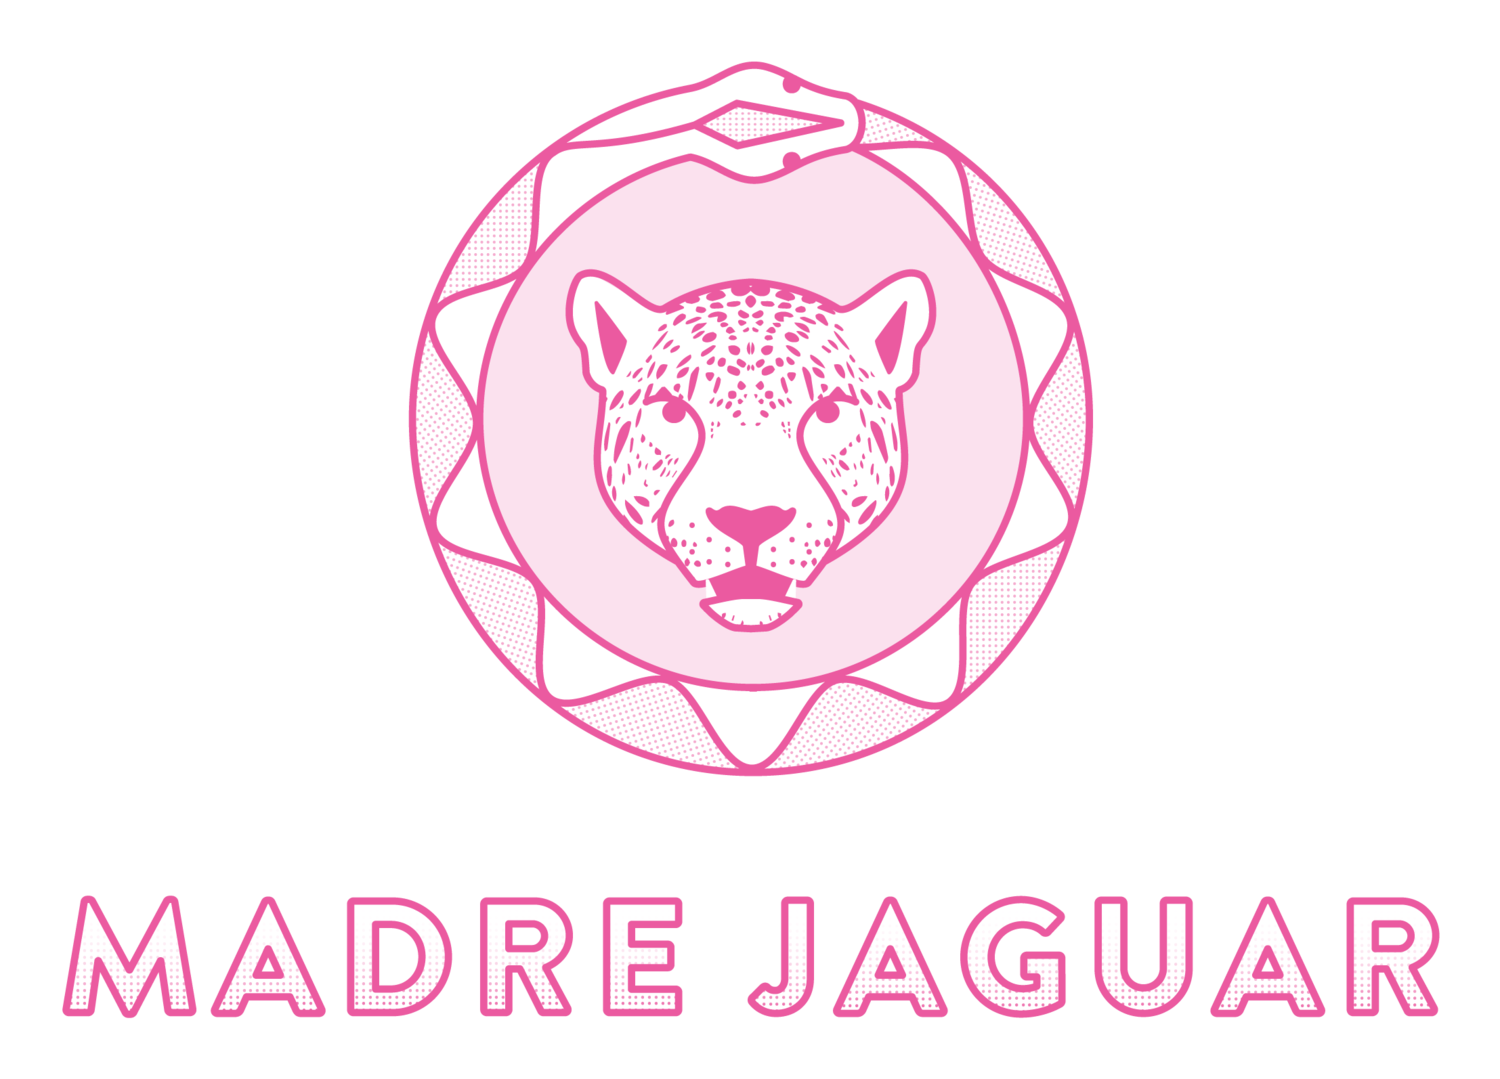 I Am Madre Jaguar